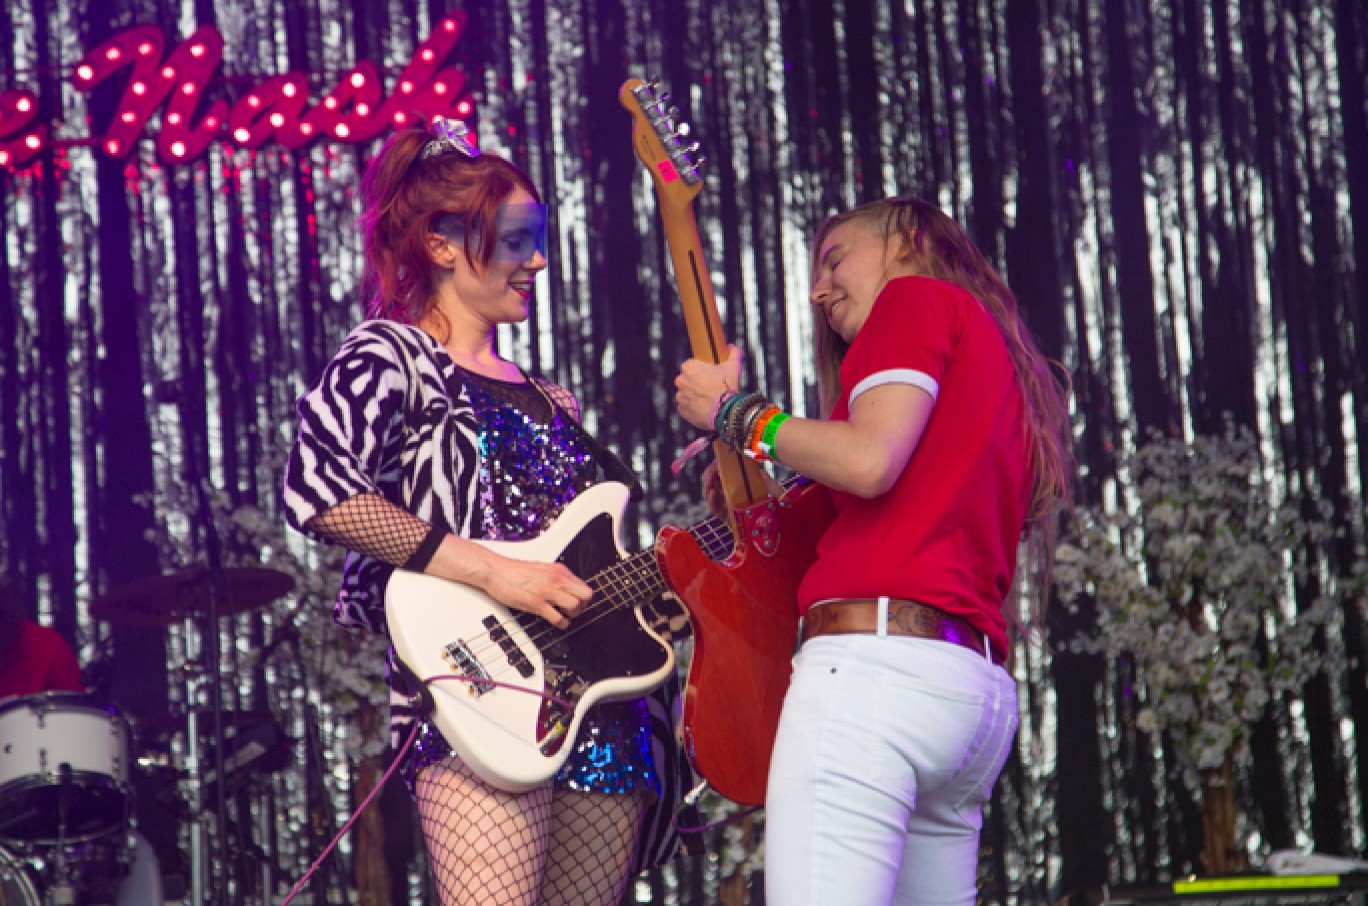 6_129-camp-bestival-2017-kate-nash-rb-f61a13211501585103